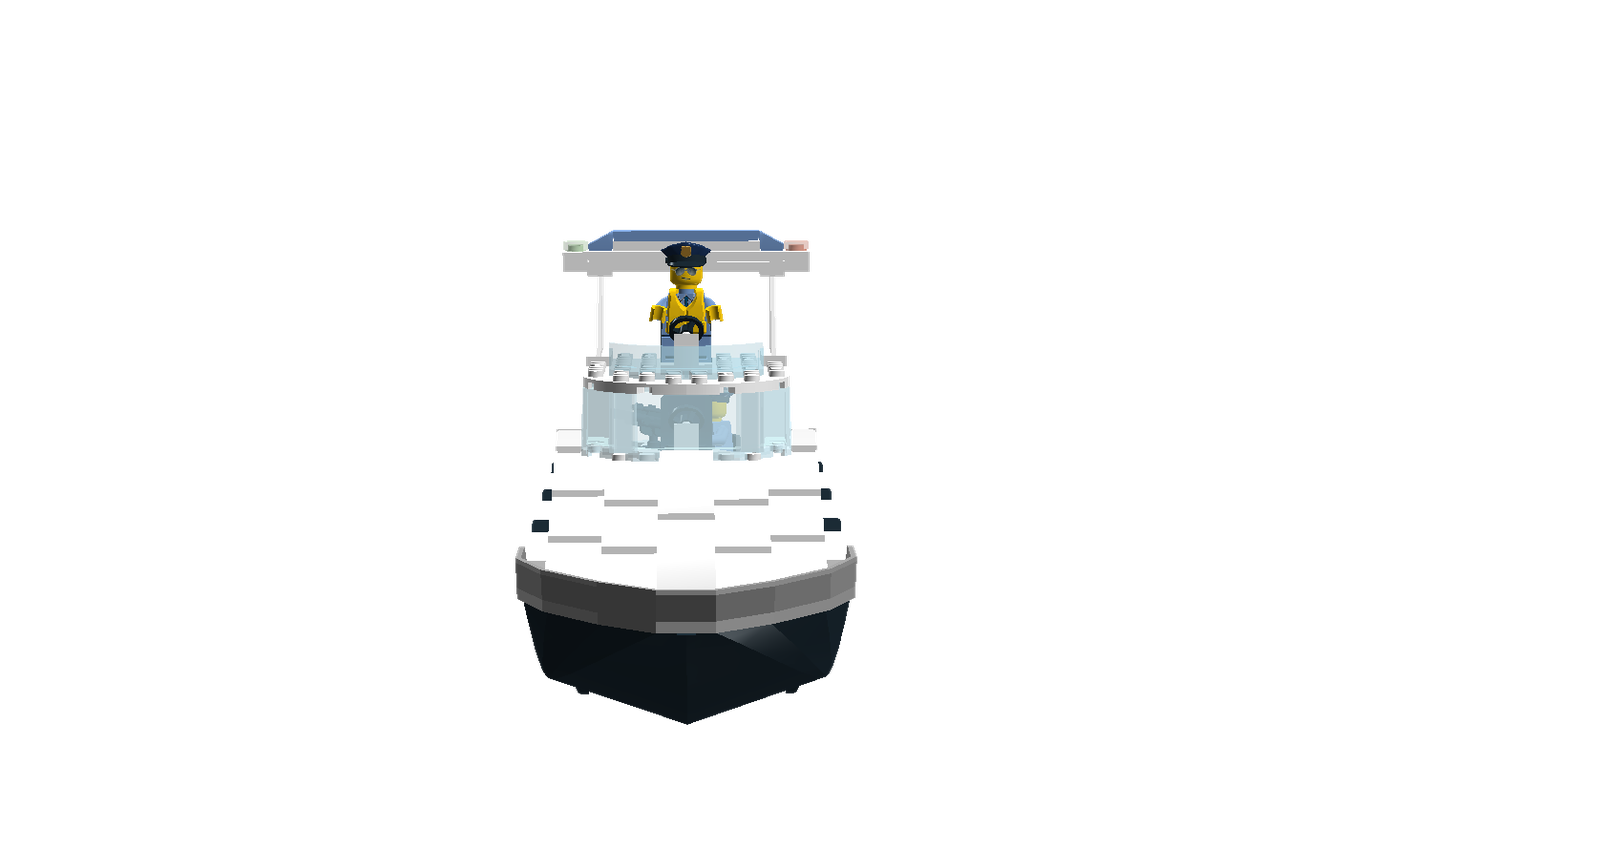 Transparent boats police. Lego ideas product boat